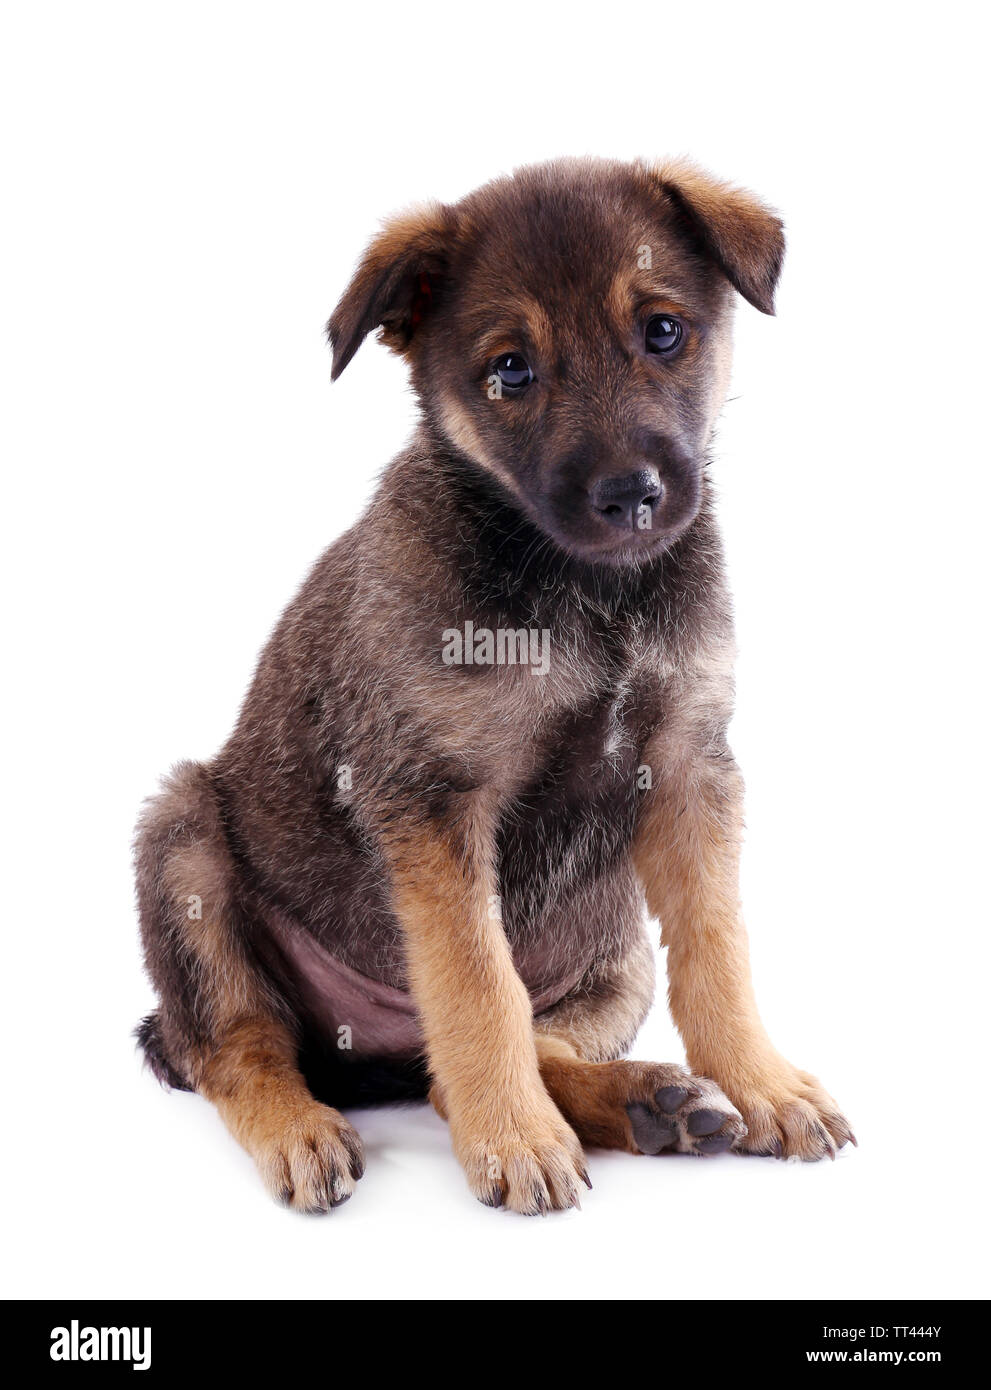 Funny puppy isolated on white - Stock Image